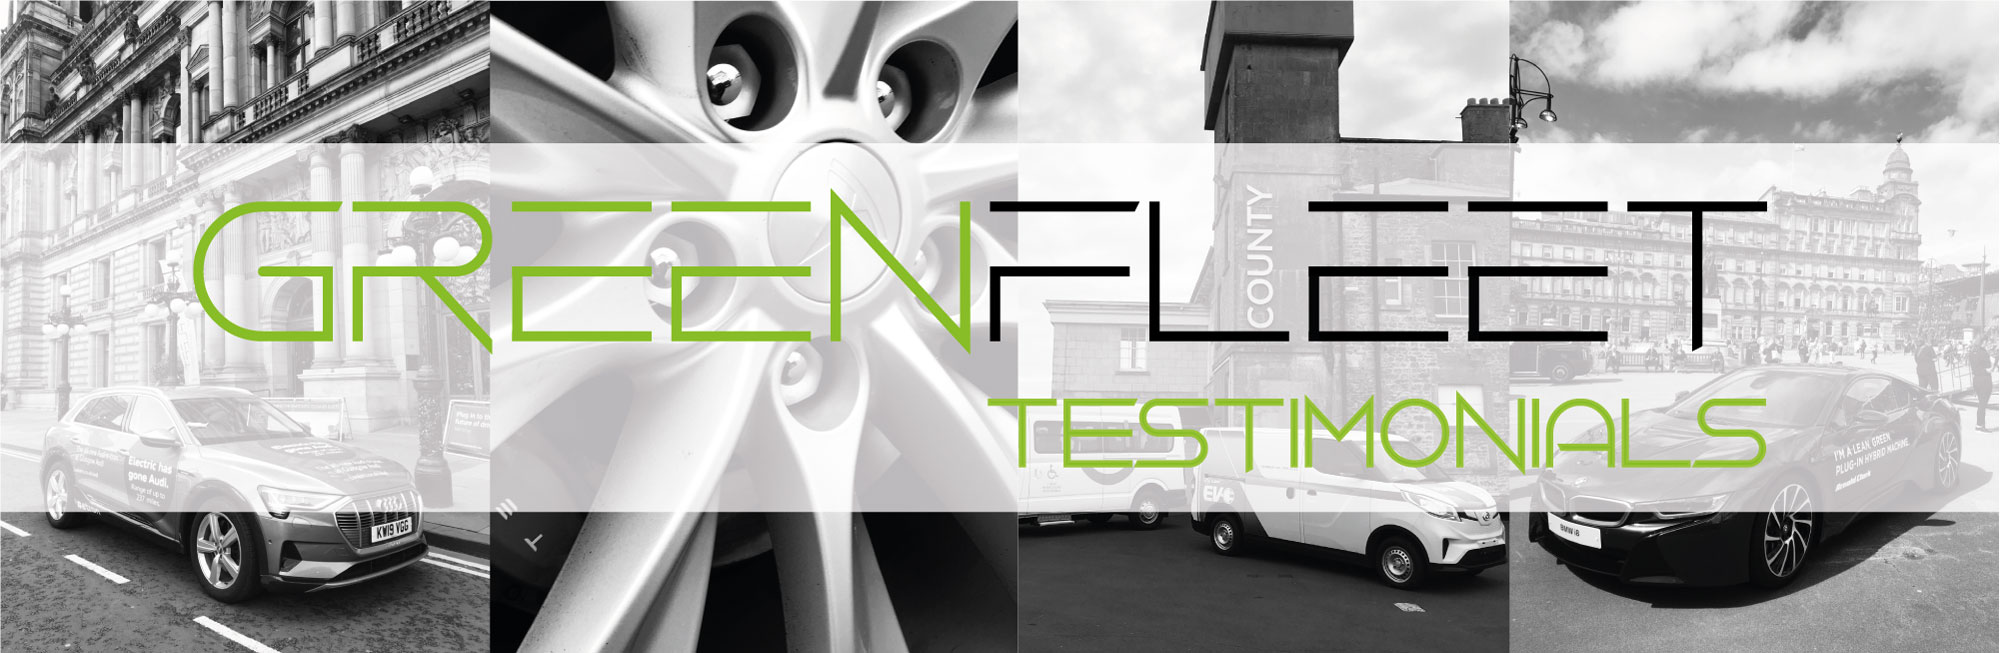 GreenFleet Events - Testimonials